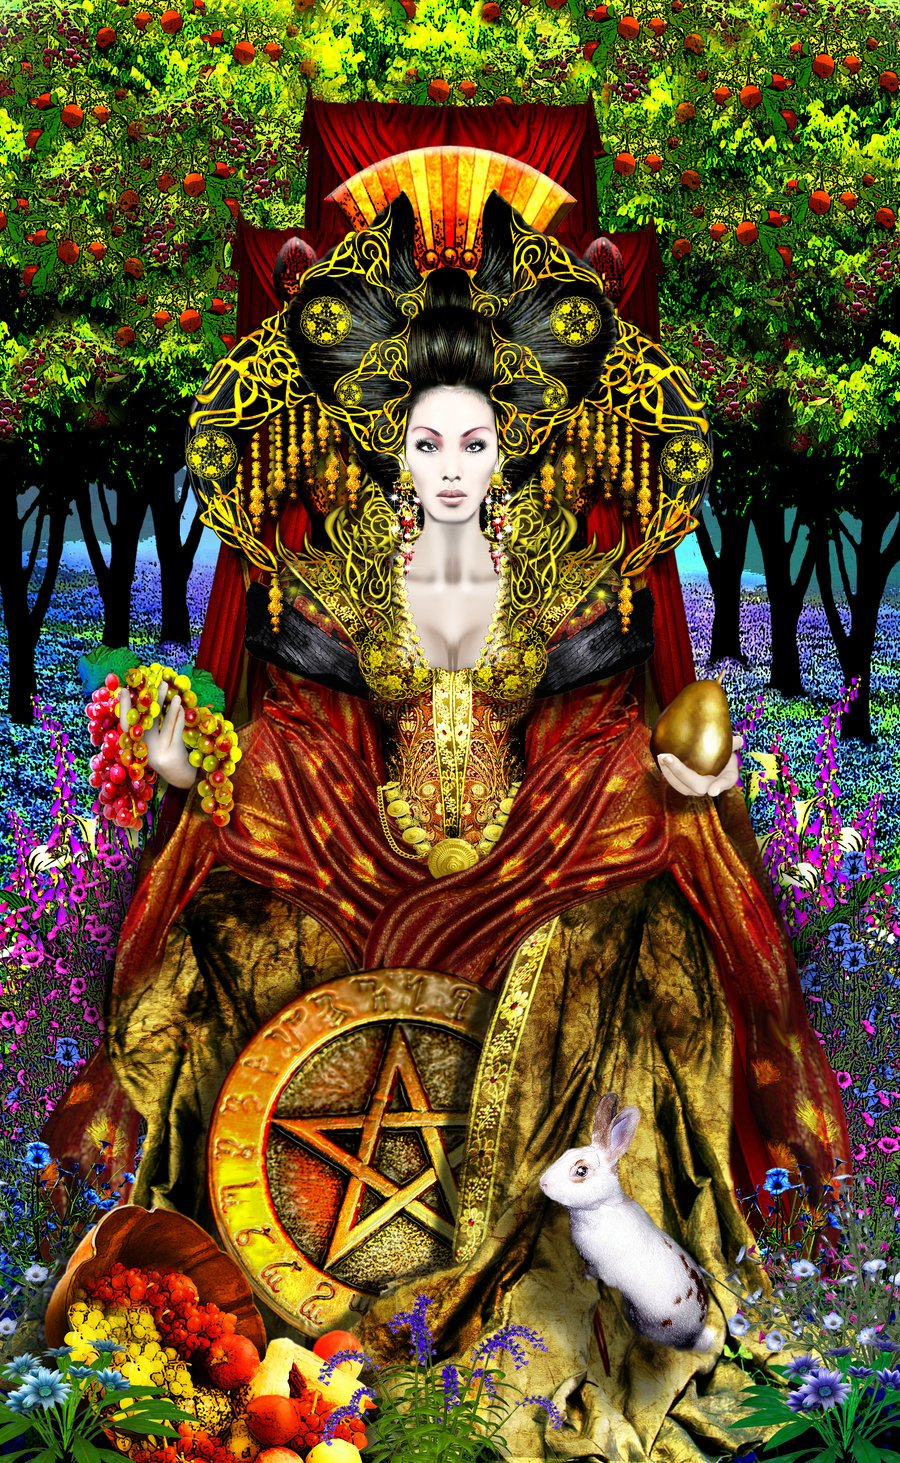 Drifting Spirit><>< - Tarot фото (31135489) - Fanpop